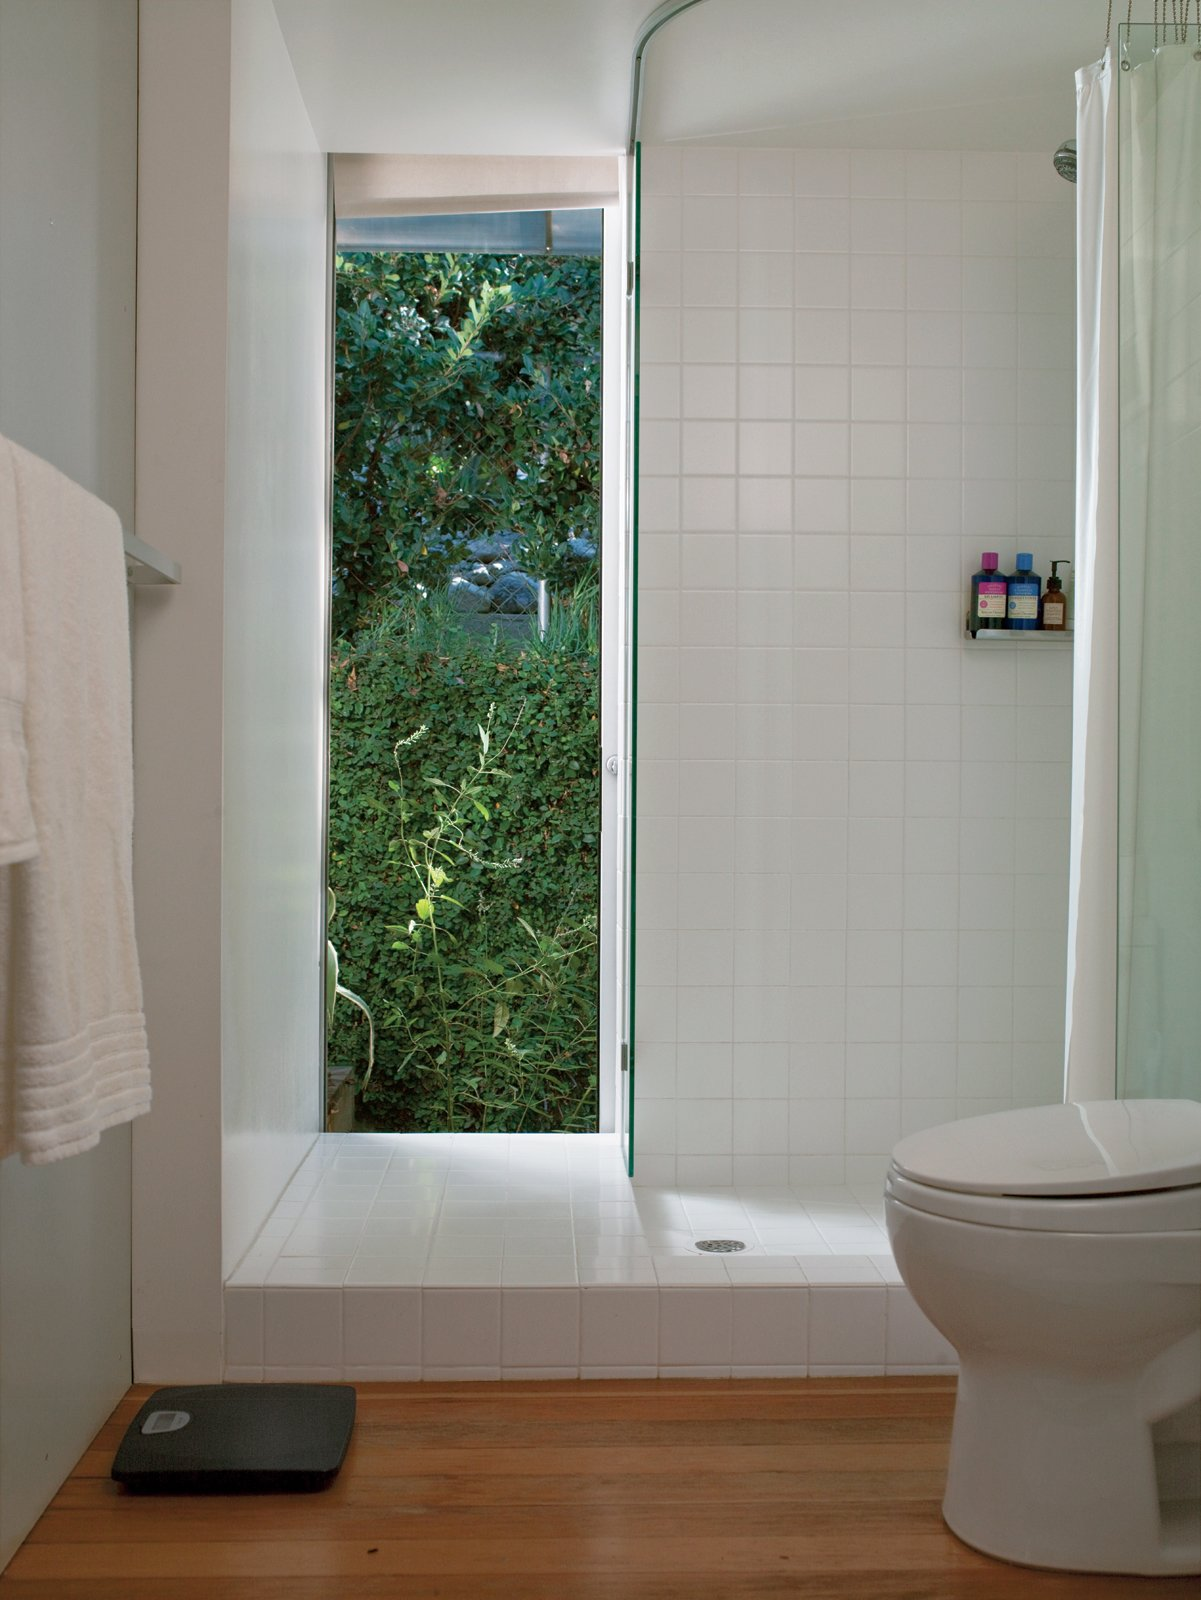 At $2.75 a square foot (which includes a designer discount), Molina and Turin could afford to extend matte white ceramic tiles from Dal-Tile beyond   the conventional shower boundaries to give the bathroom the look of   a brighter, more expansive space.  Photo 9 of 11 in How Good Idea Studio Revamped a 1924 Clapboard House on a $62,000 Budget